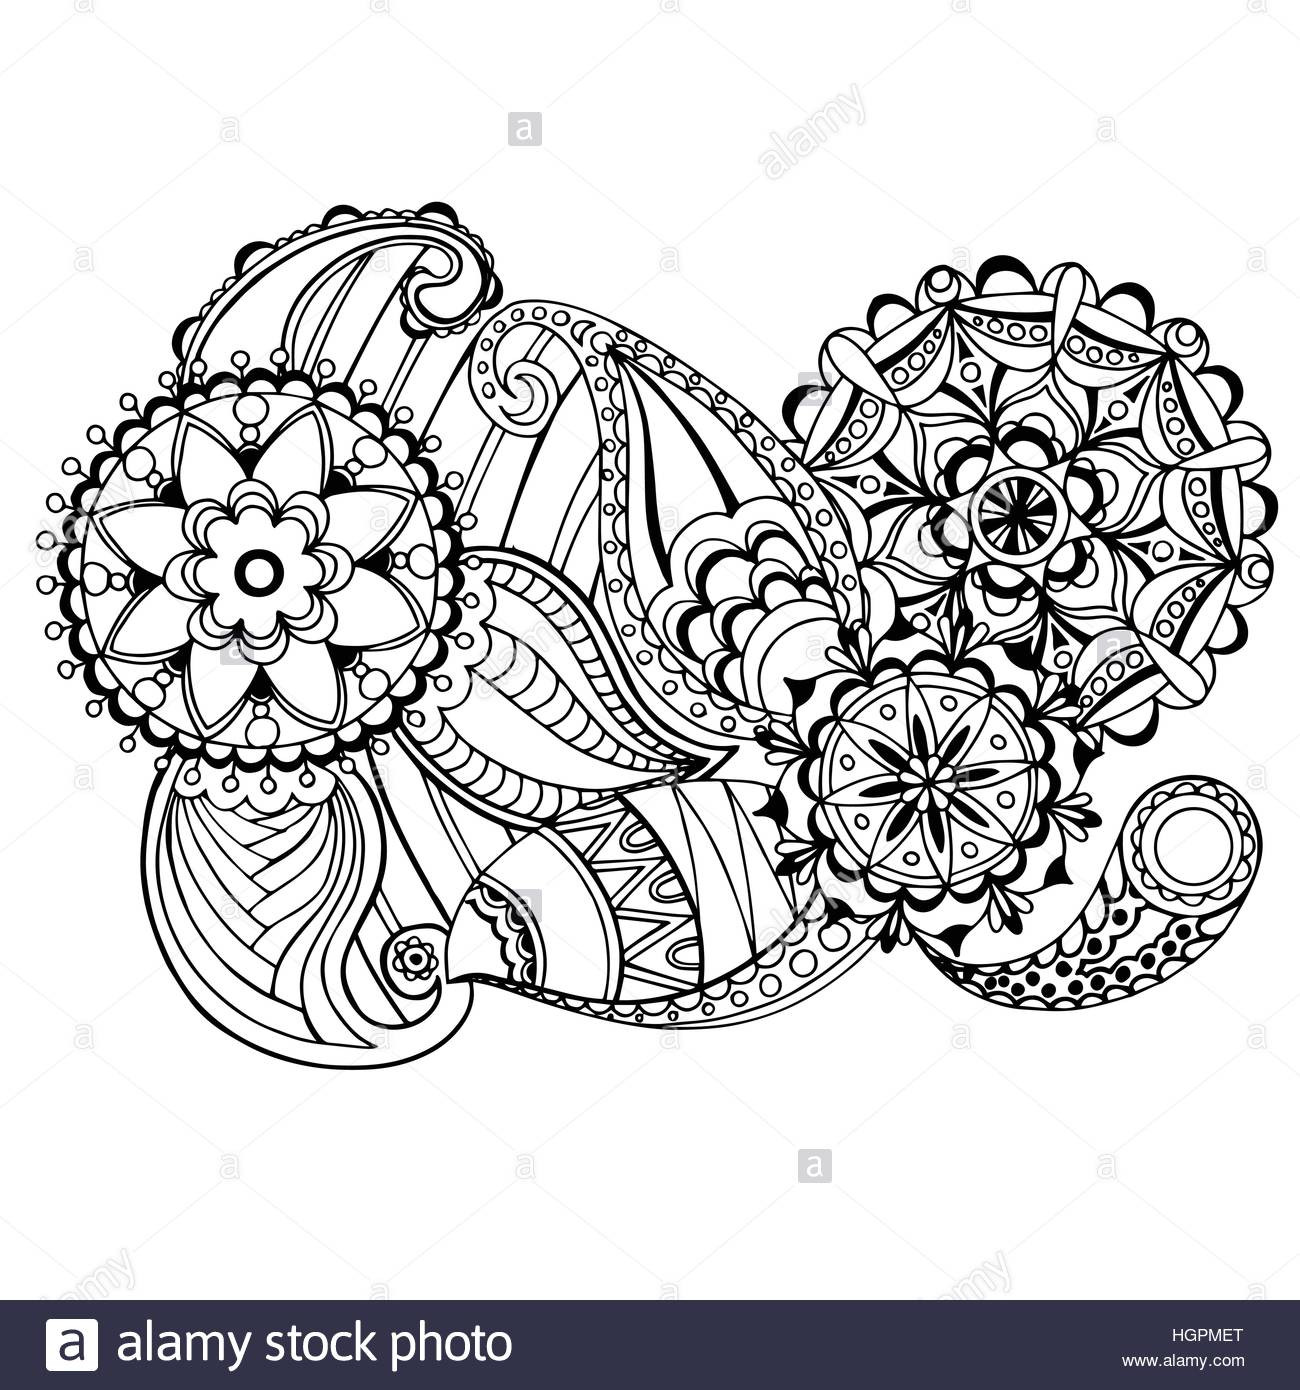 Relaxing Coloring Pages For Kids  Page for coloring book very interesting and relaxing job